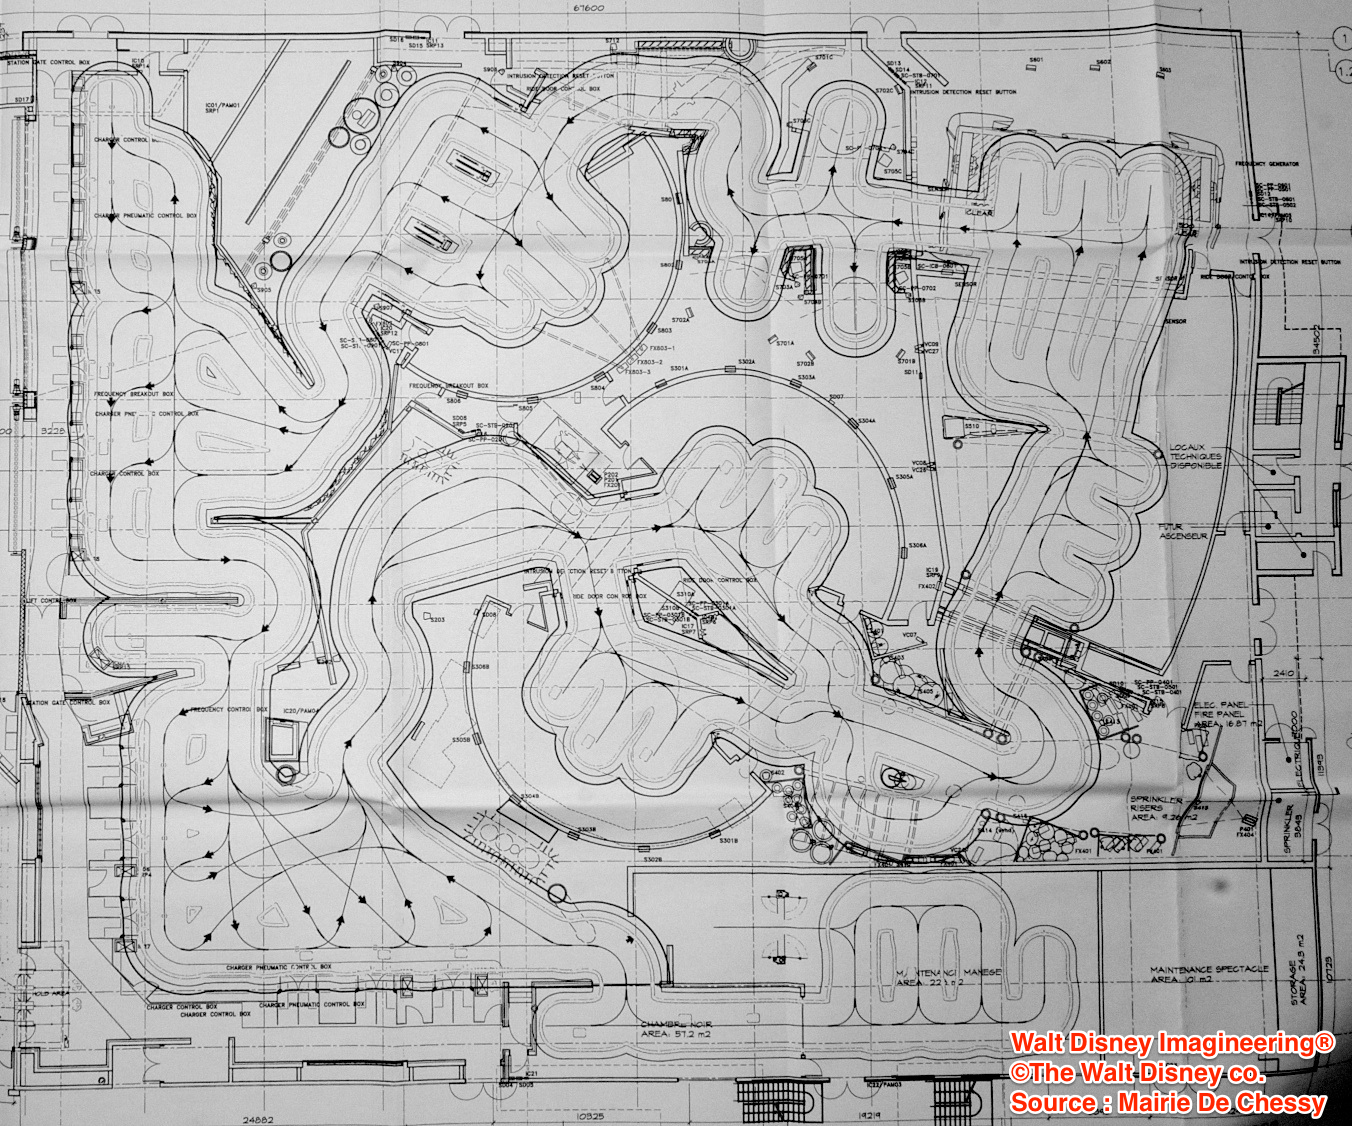 Ratatouille attraction kitchen calamity disneyland paris blueprint ratatouille attraction kitchen calamity disneyland paris blueprint show building layout malvernweather Images